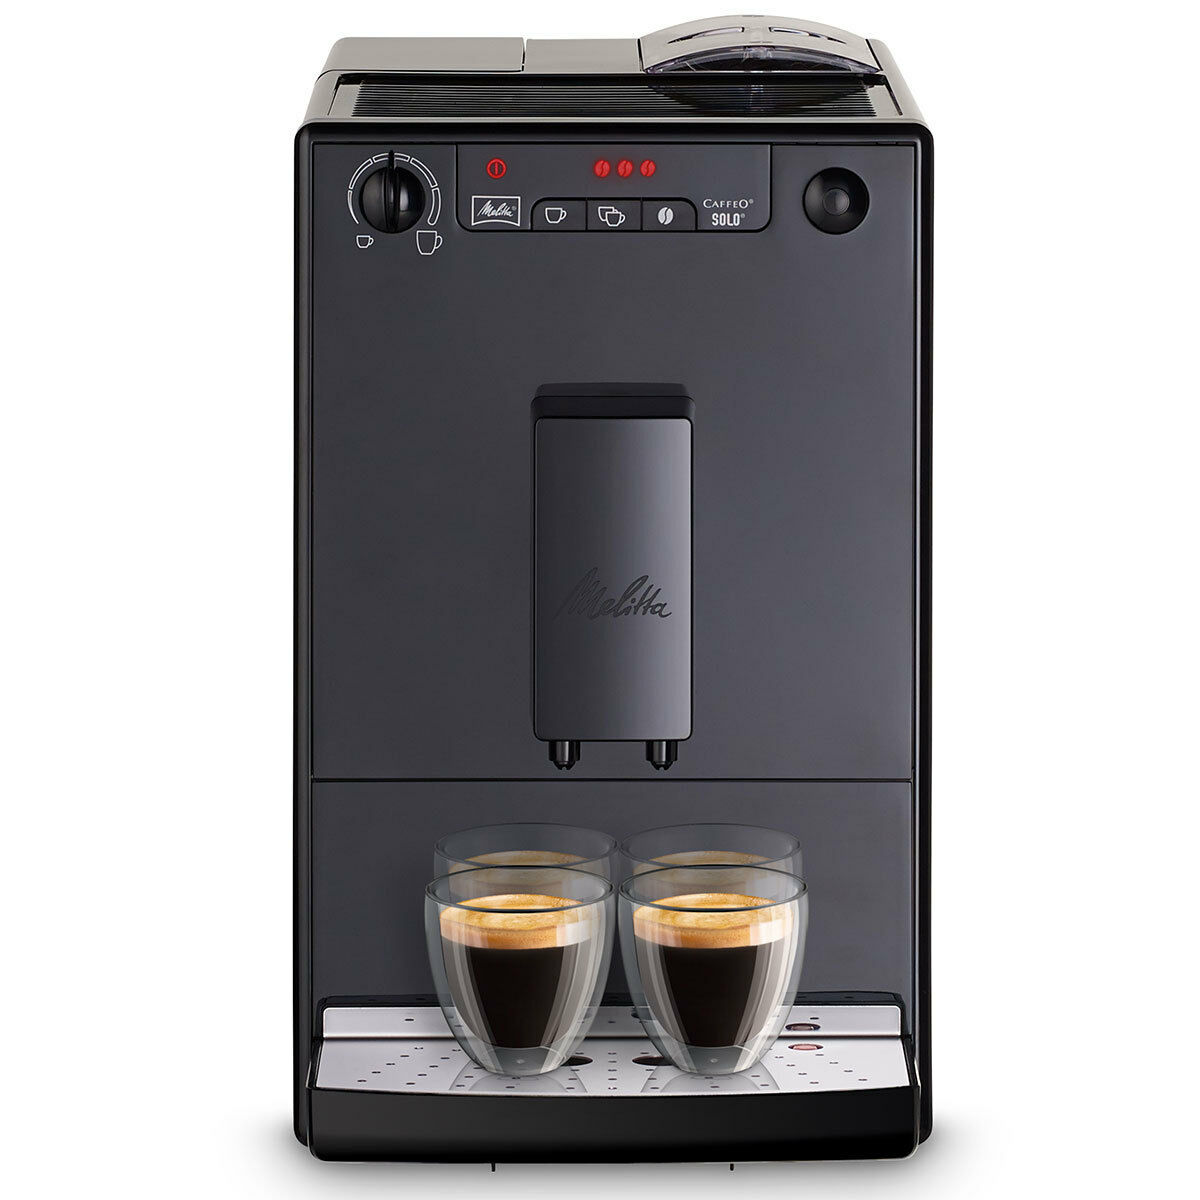 Details About Bean To Cup Coffee Machine Espresso Maker With Integrated Coffee Grinder Melitta